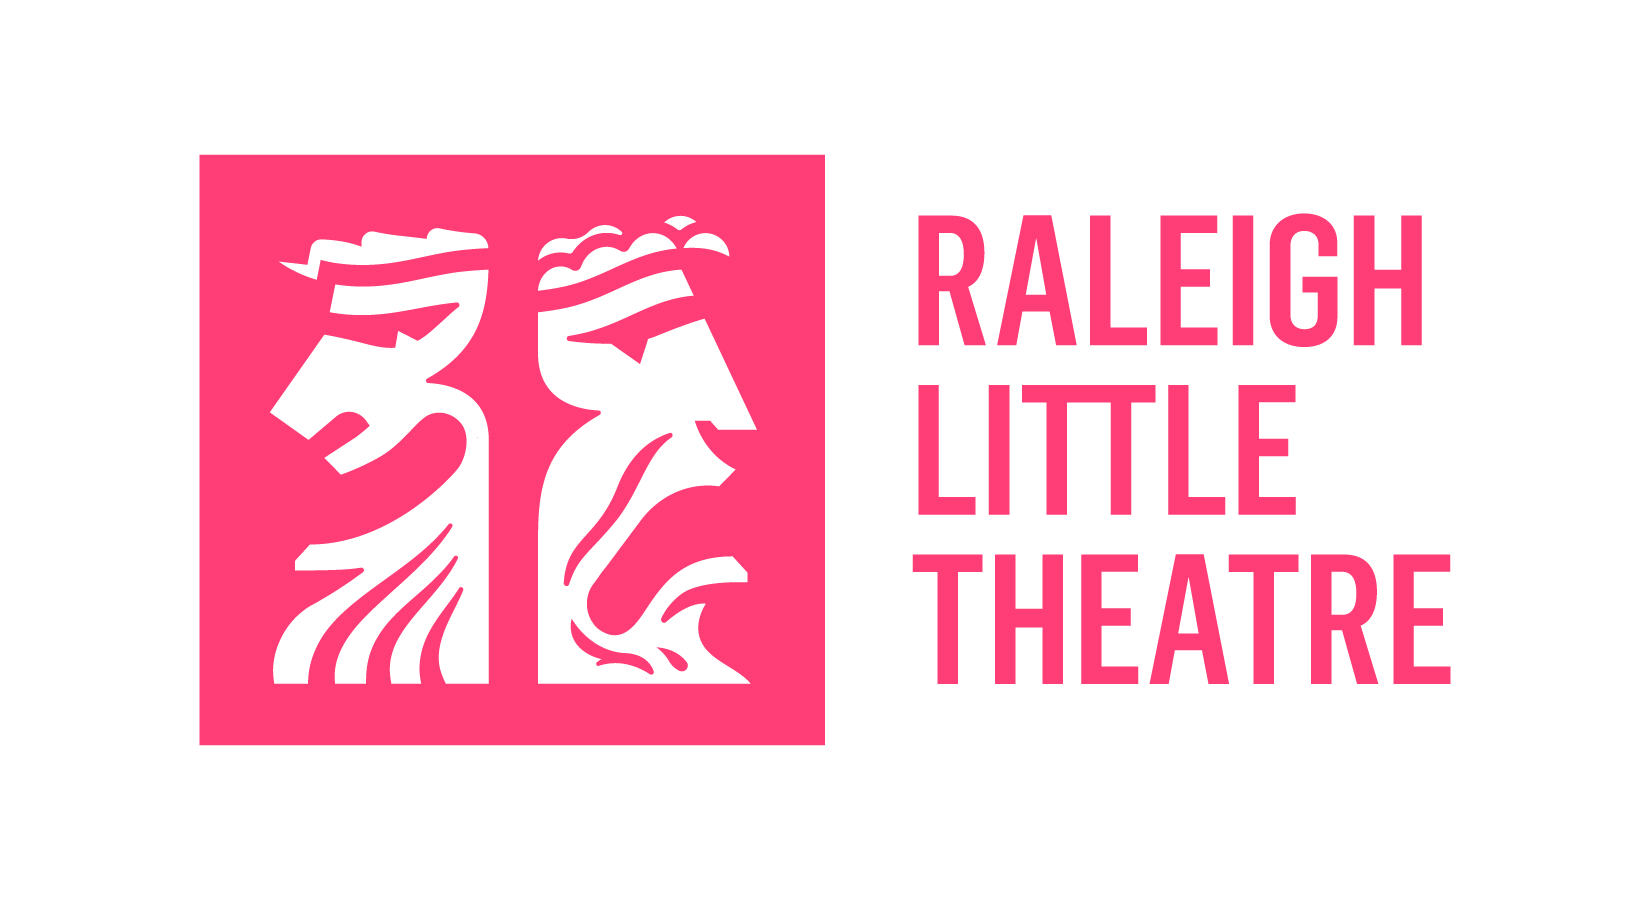 raleigh little.theatre